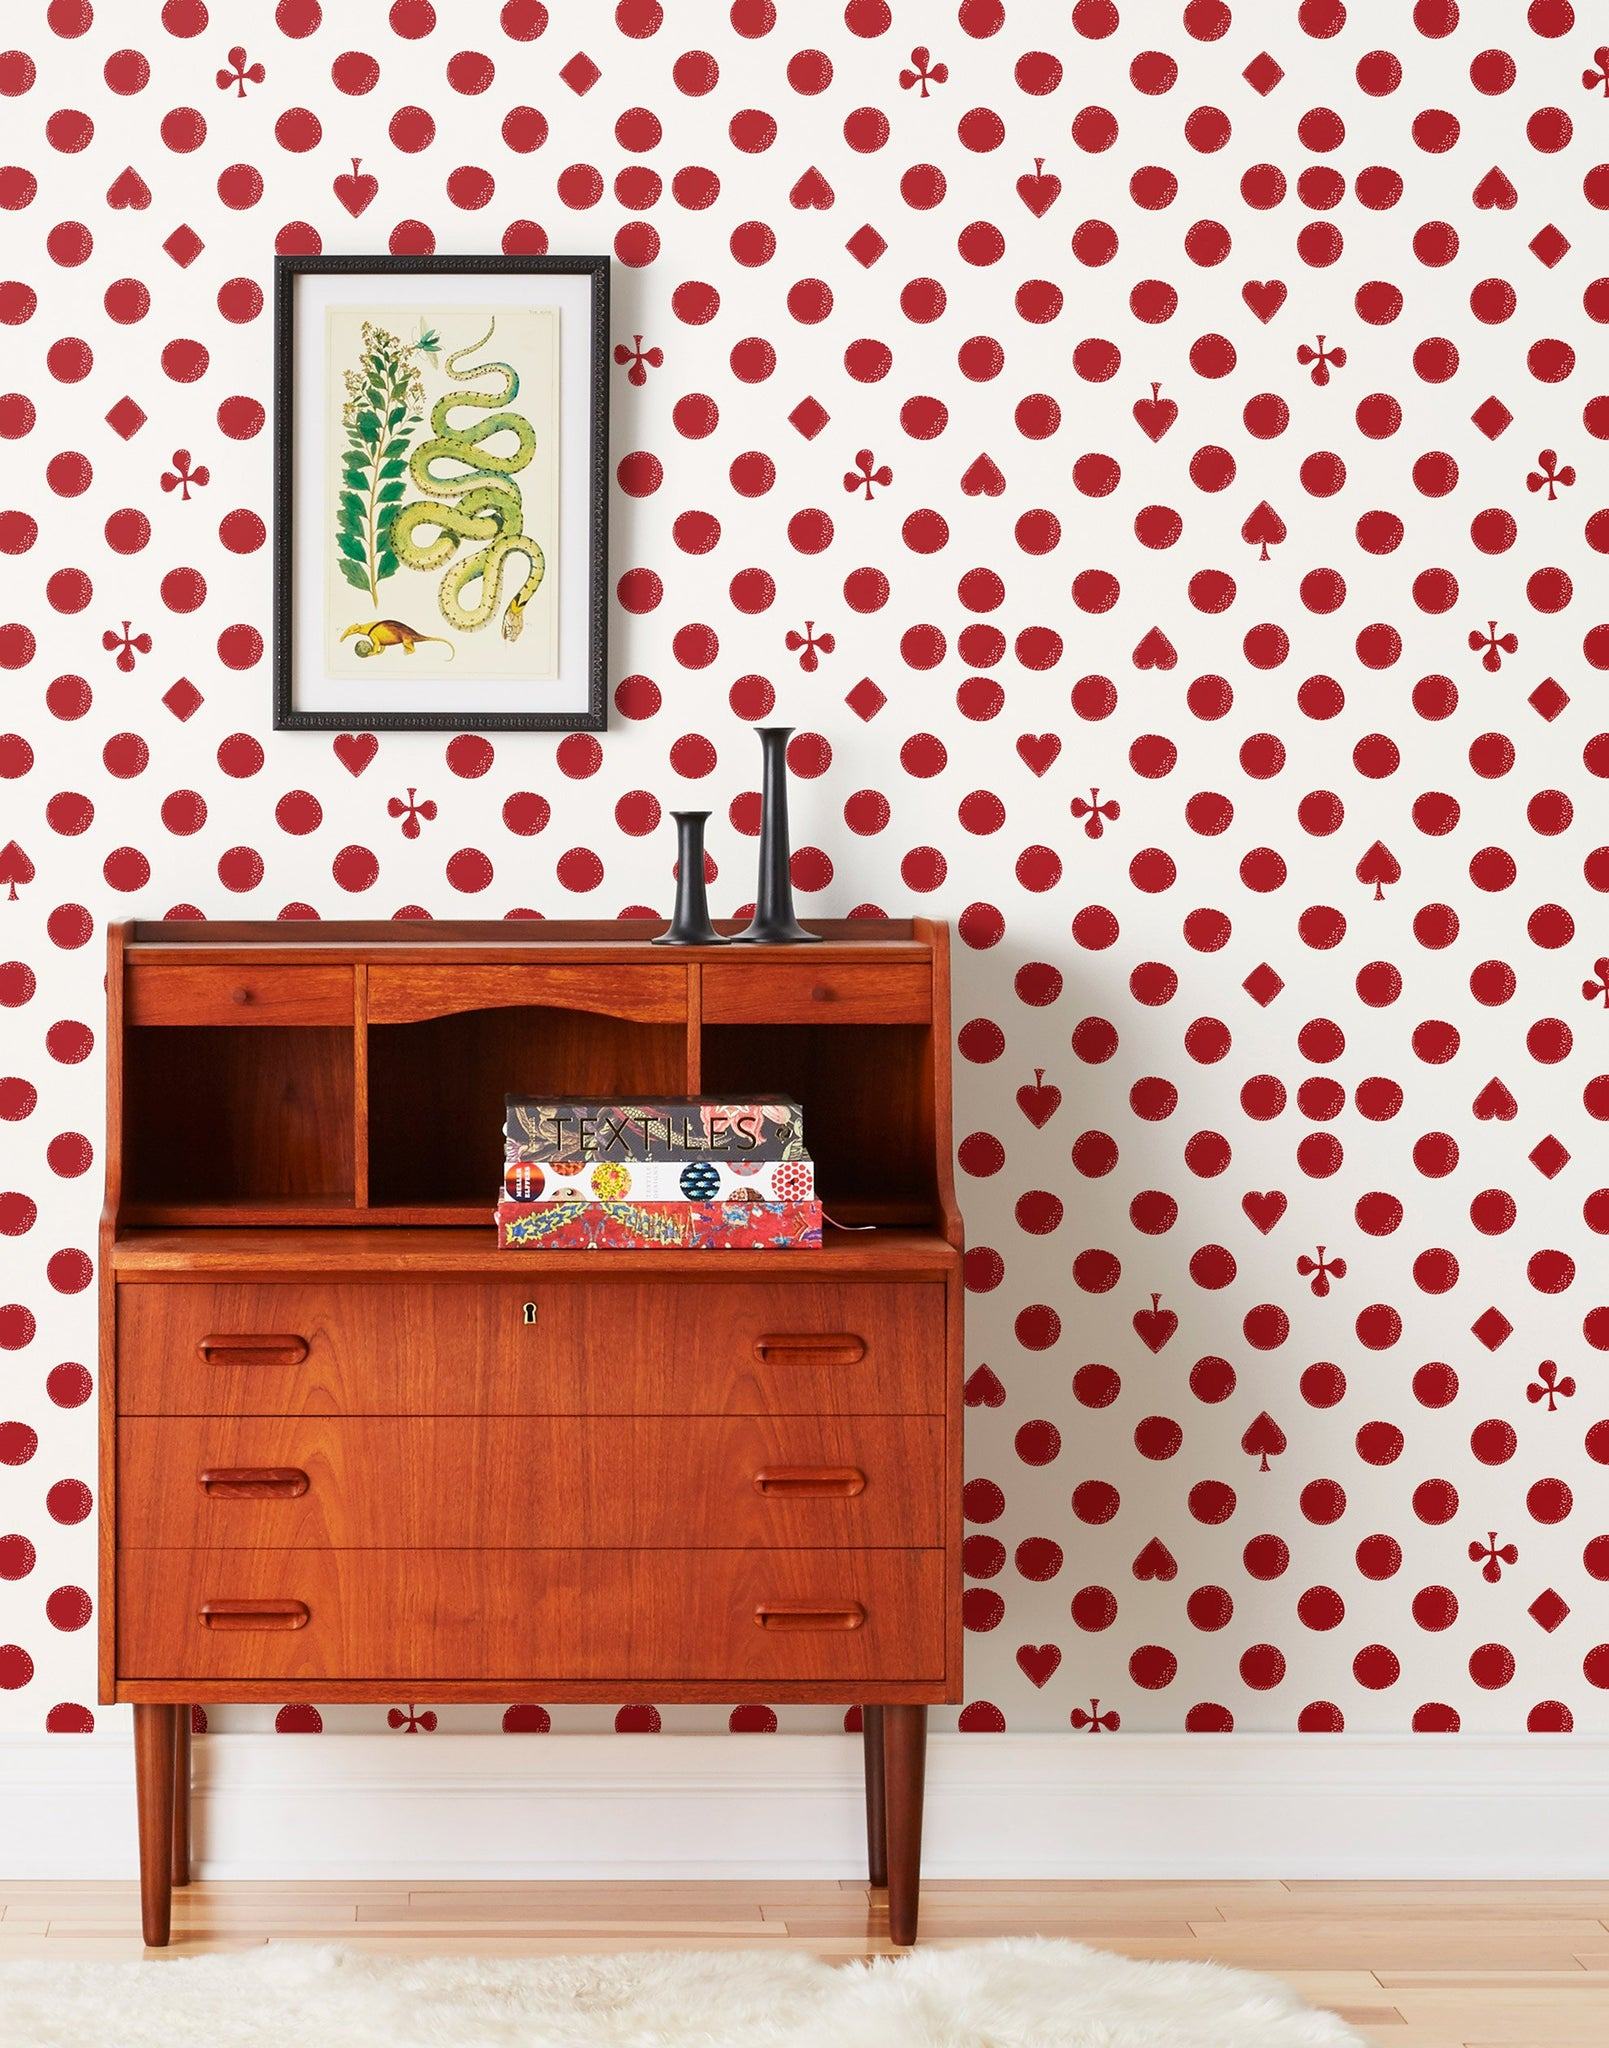 Spring/Summer '19 collection | Cards Red wallpaper | Charlotte Janvier | Hygge & West